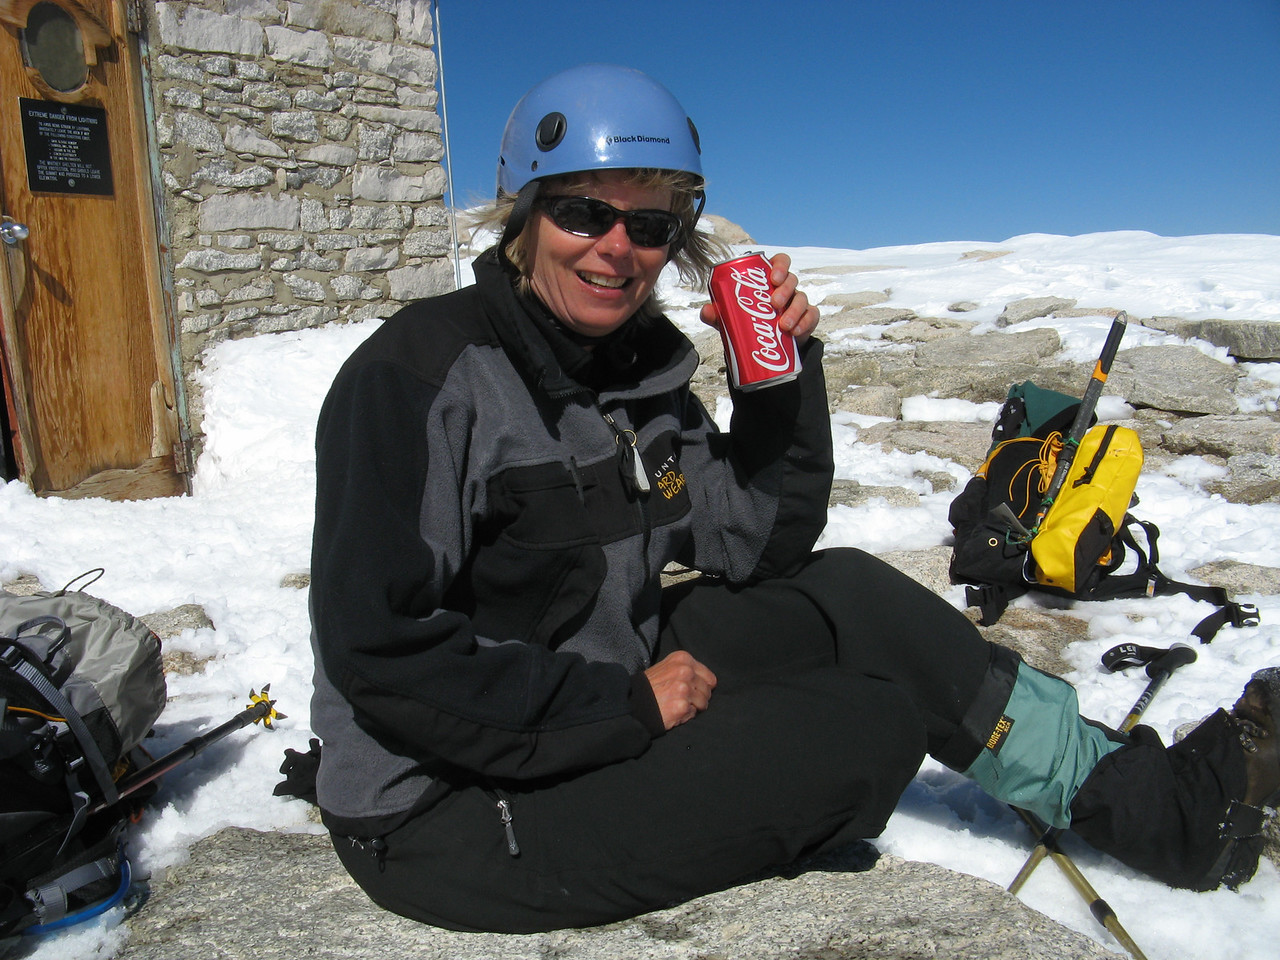 Everything goes better with Coke, even summiting!  Thanx RickG for the idea.  It was great pick-me-up